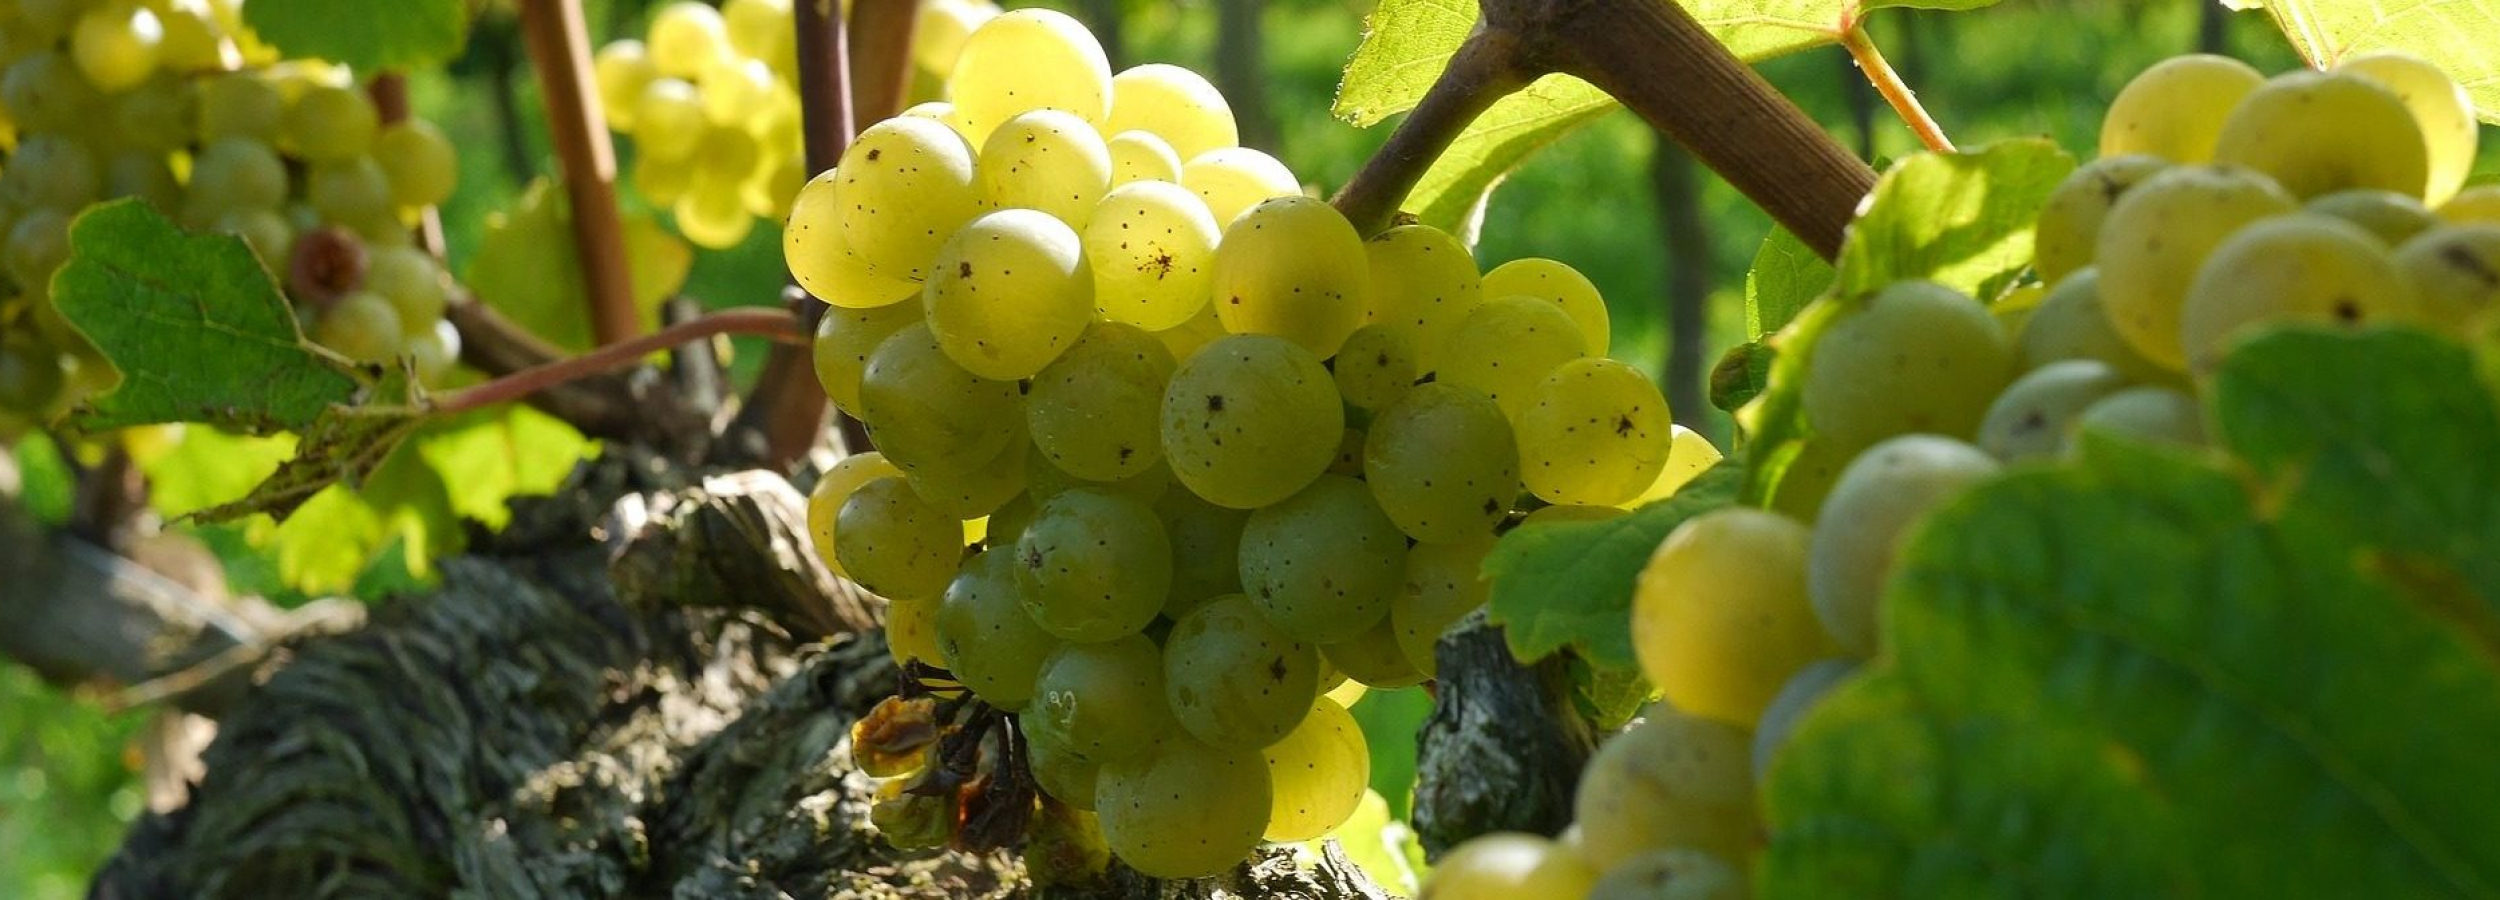 cropped-cropped-grapes-2104077_1920.jpg